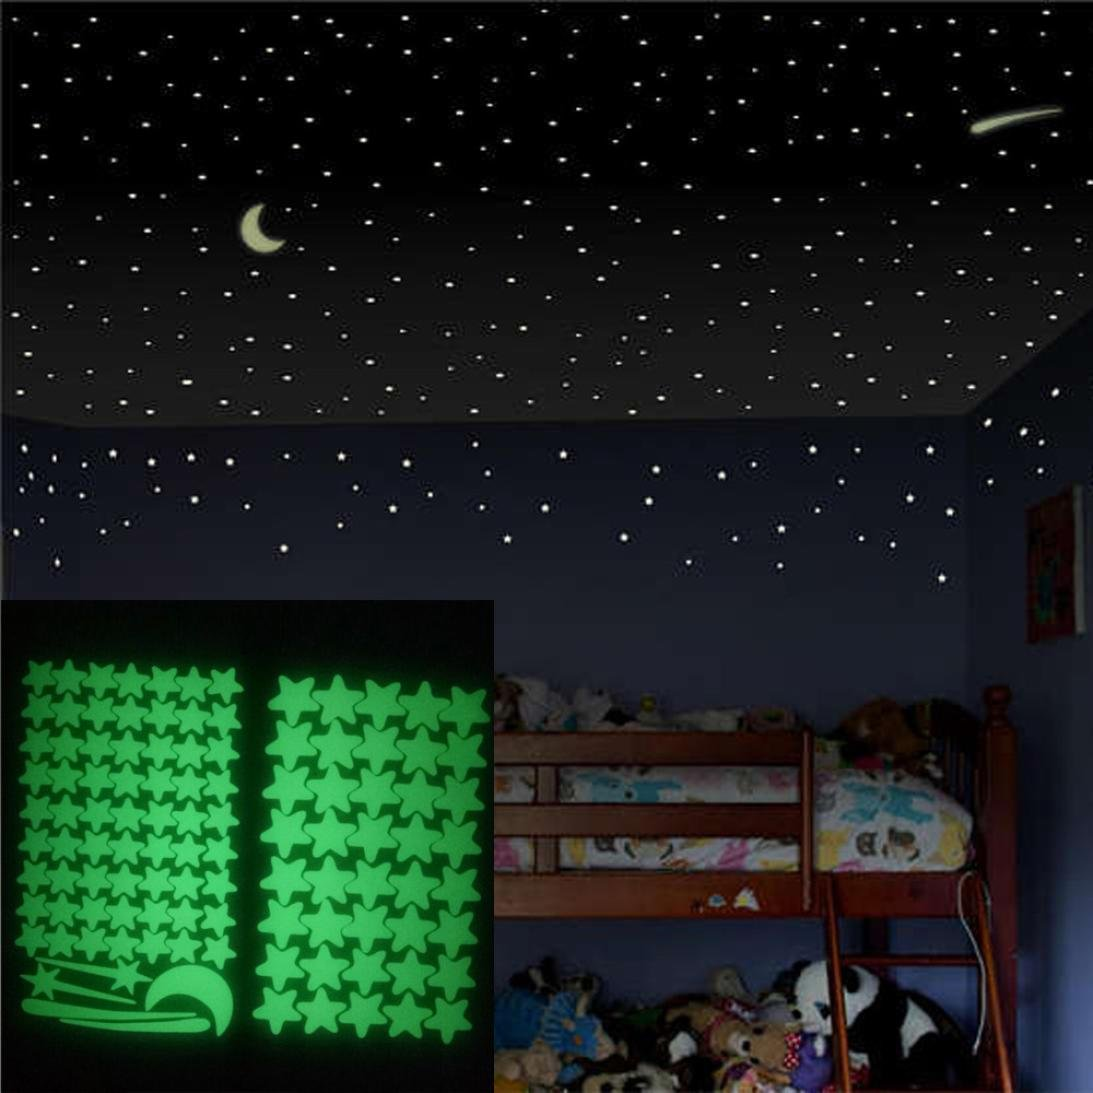 Prevently Wall Stickers, Home Wall Glow In The Dark Star Wall Stickers 103Pcs Star Moon Luminous DIY Art Kids Room Decor Prevently Home